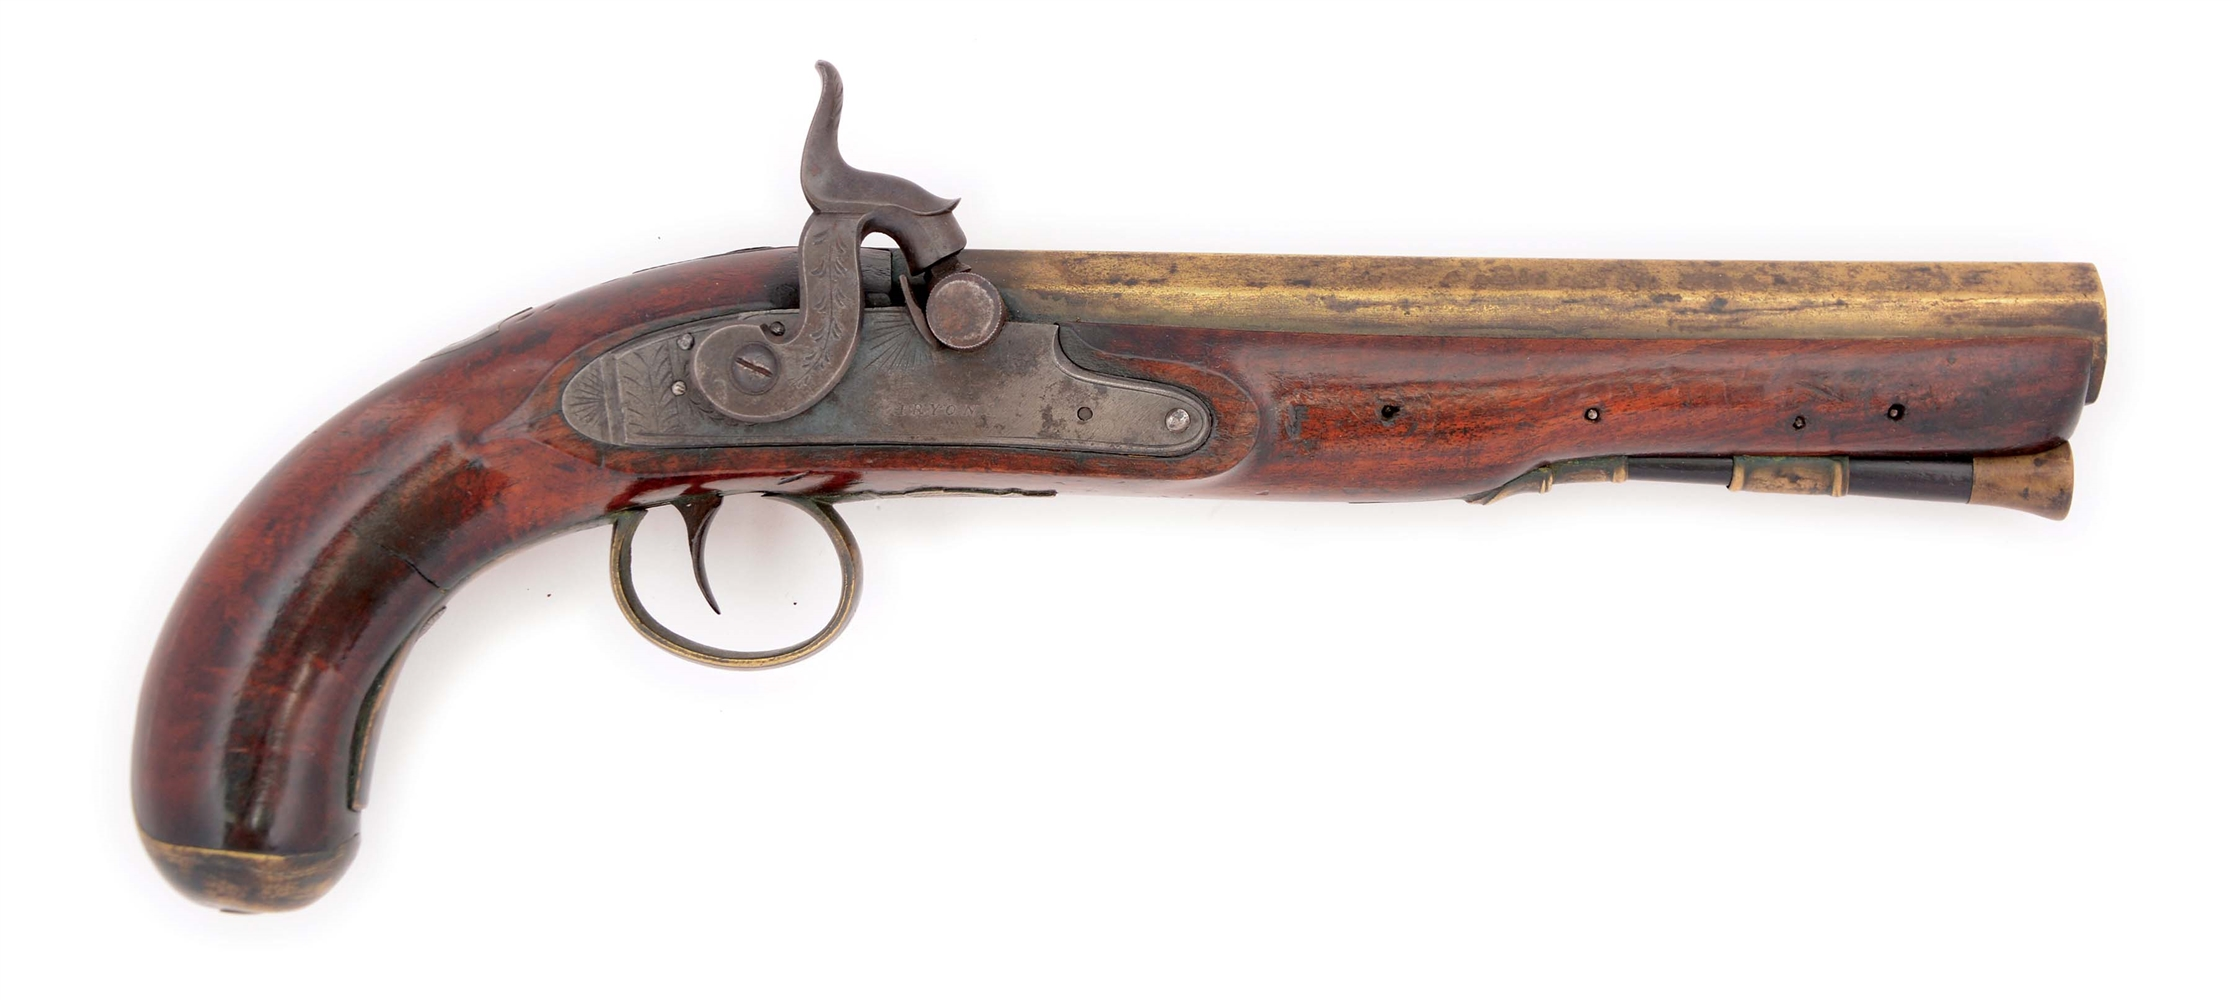 (A) AN AMERICAN KENTUCKY STYLE SINGLE SHOT FLINTLOCK PISTOL CONVERTED TO PERCUSSION BY TRYON, PHILADELPHIA.